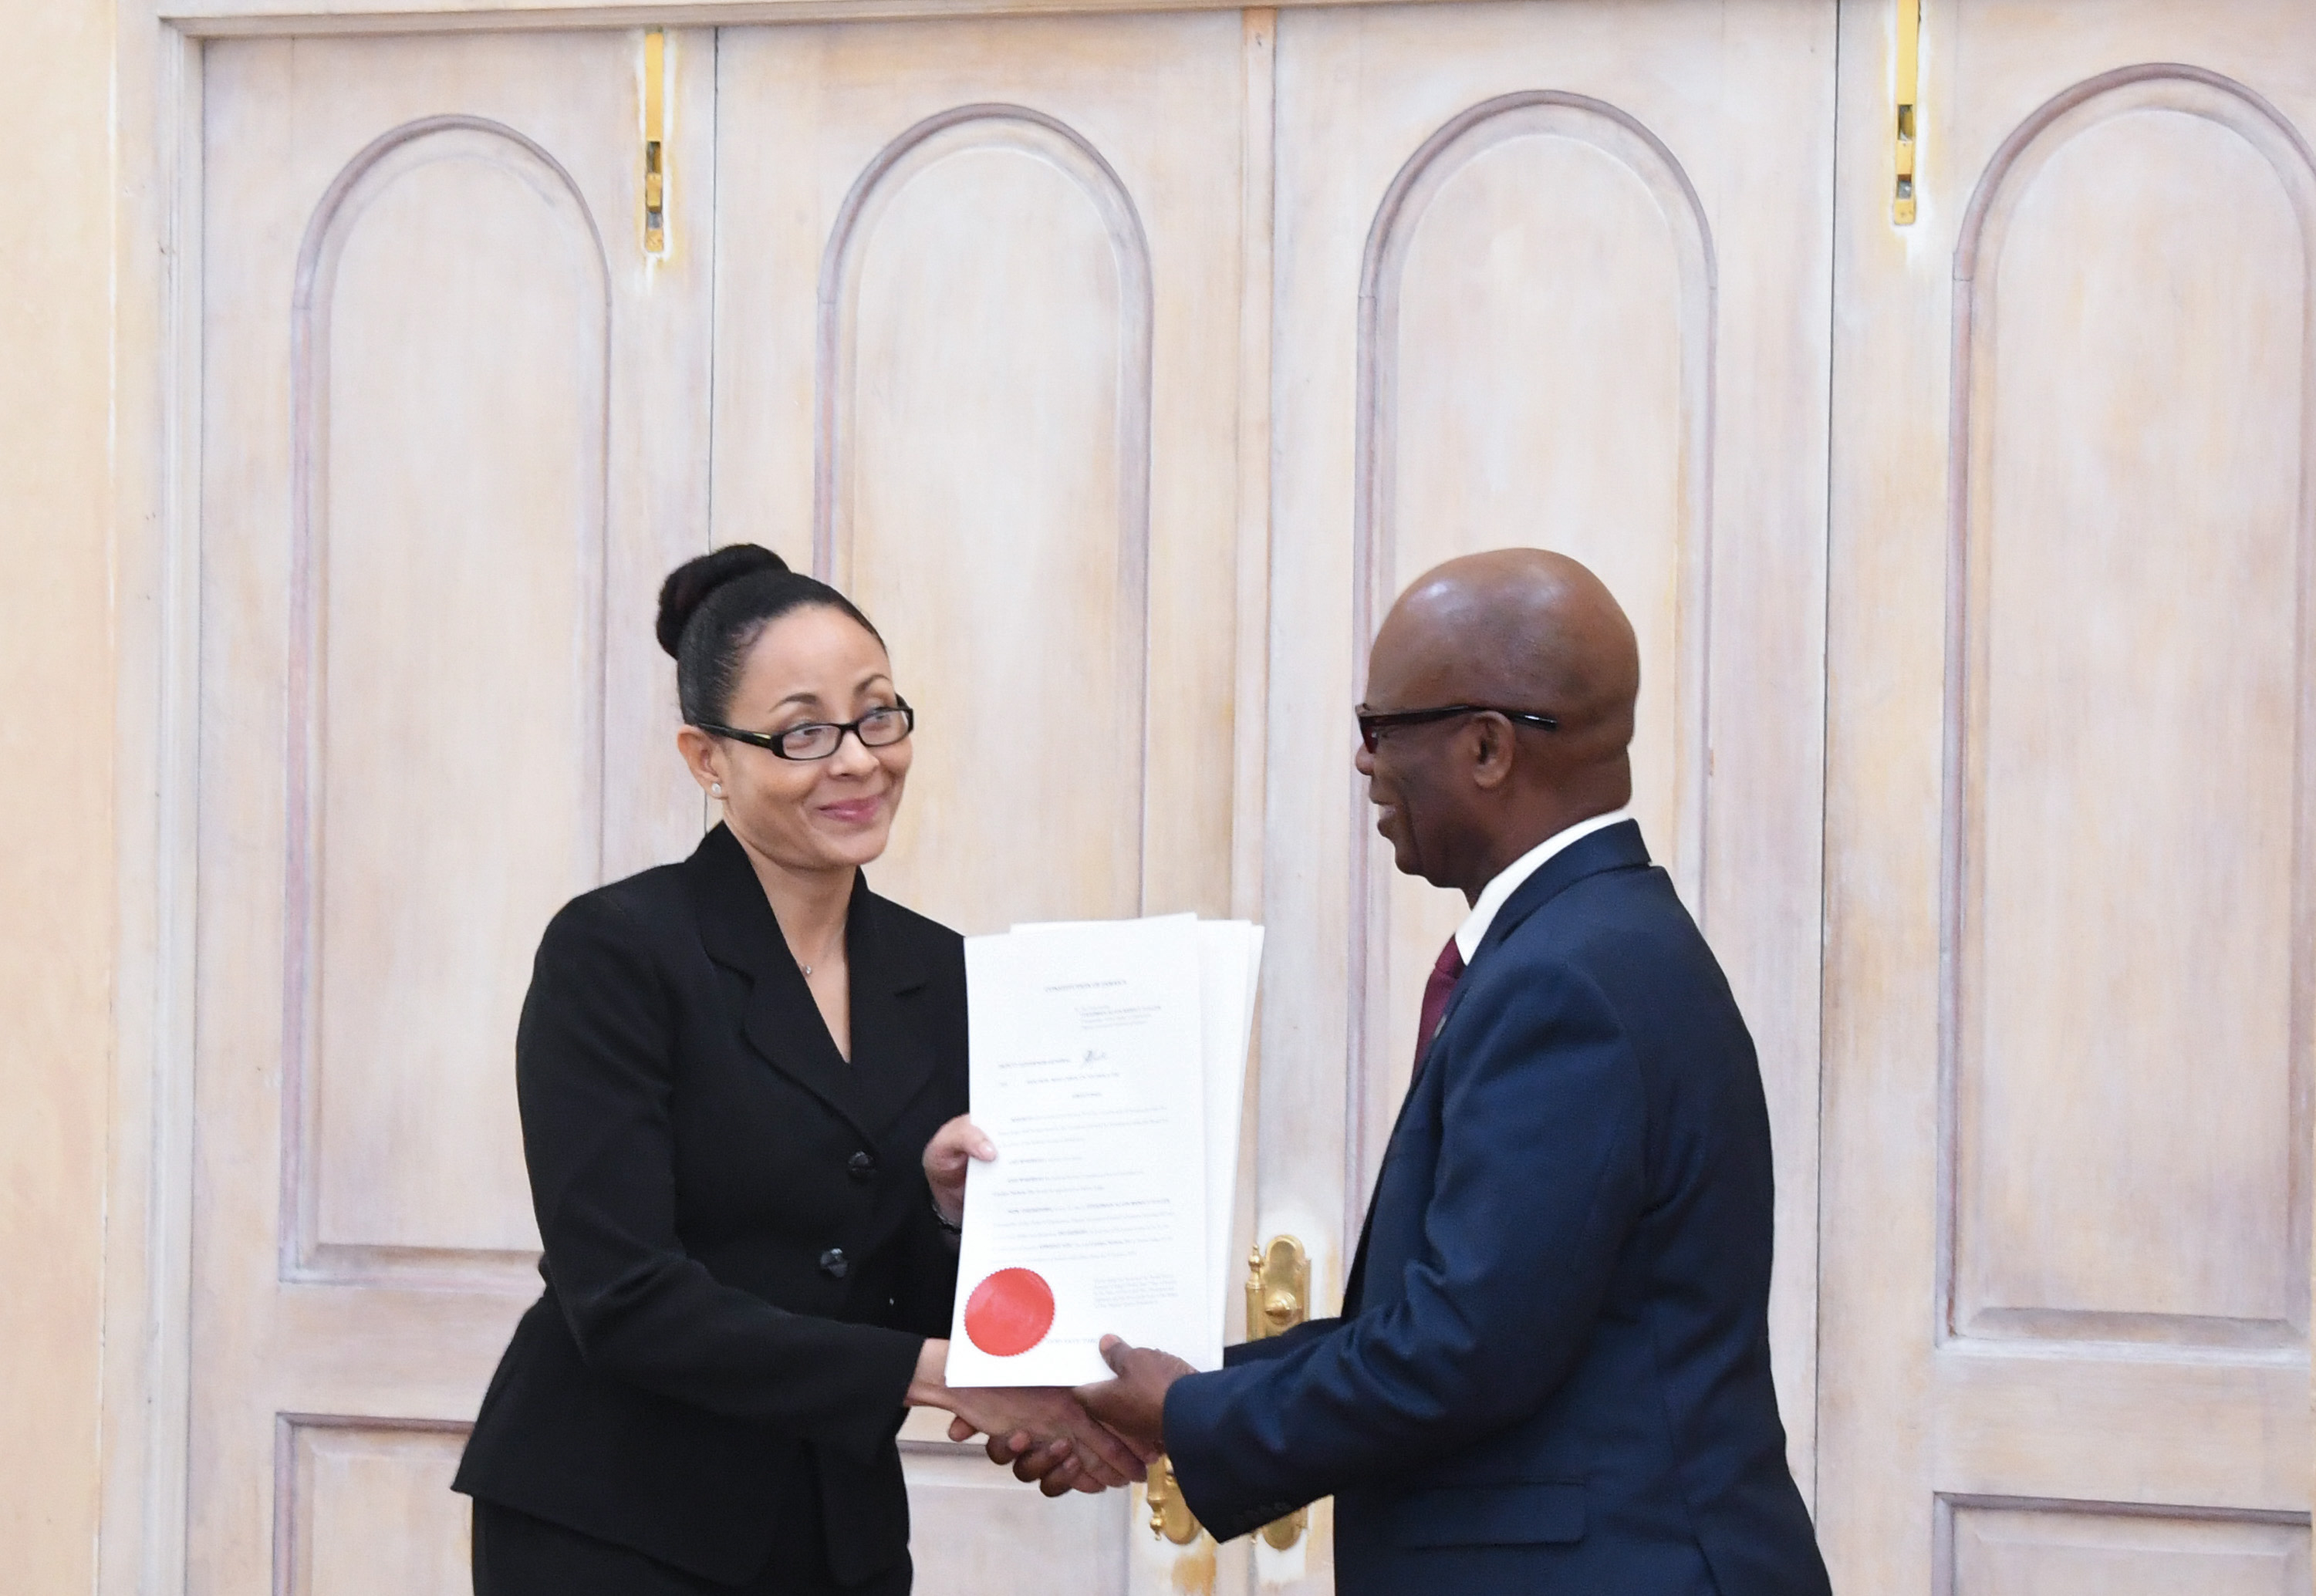 Deputy Governor-General the Honourable Steadman Fuller presents the Hon. Miss. Justice Carolyn N. Tie with her instrument of appointment.